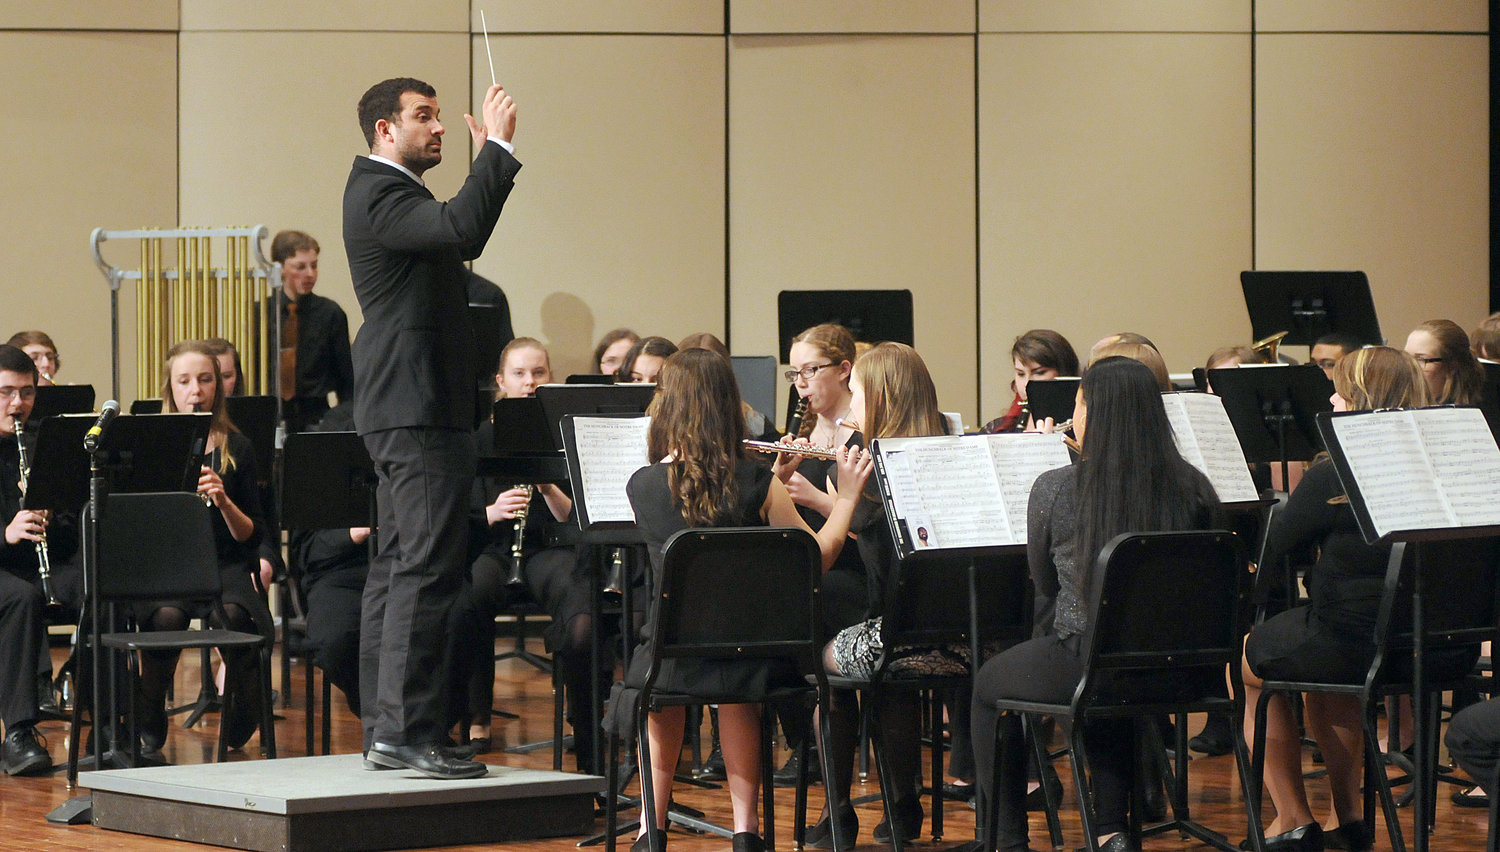 MUSICAL STAFF APPOINTED — Rome Free Academy music teacher Jake Meiss, shown directing the school's Concert Band in this file photo, will direct, choreograph and conduct the orchestra, for the school's production of 'Shrek the Musical.'